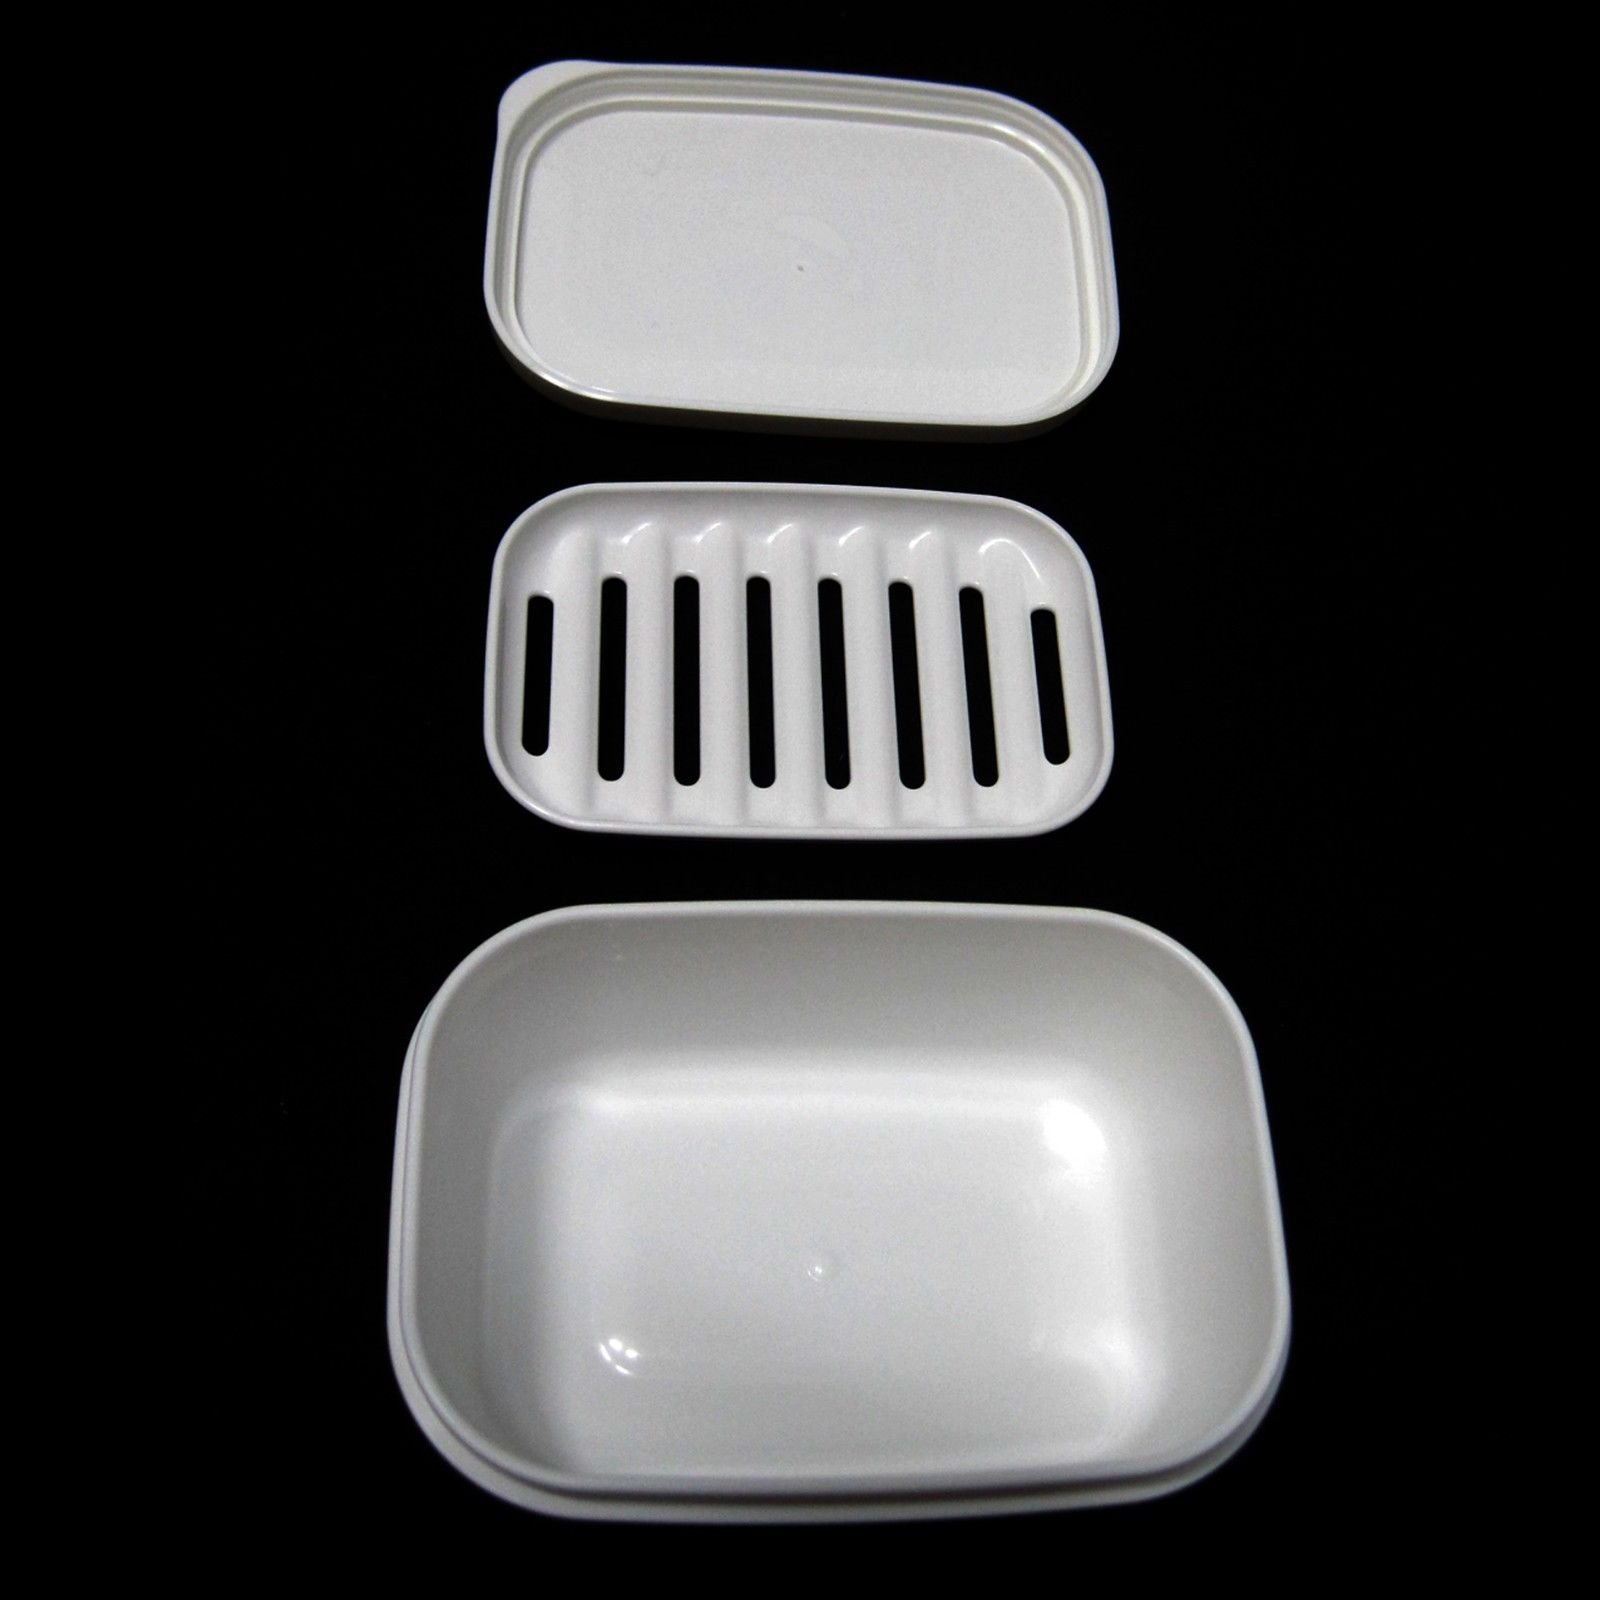 Portable Rectangular Soap Case Airtight Container Soap Tray Traveling Accessory